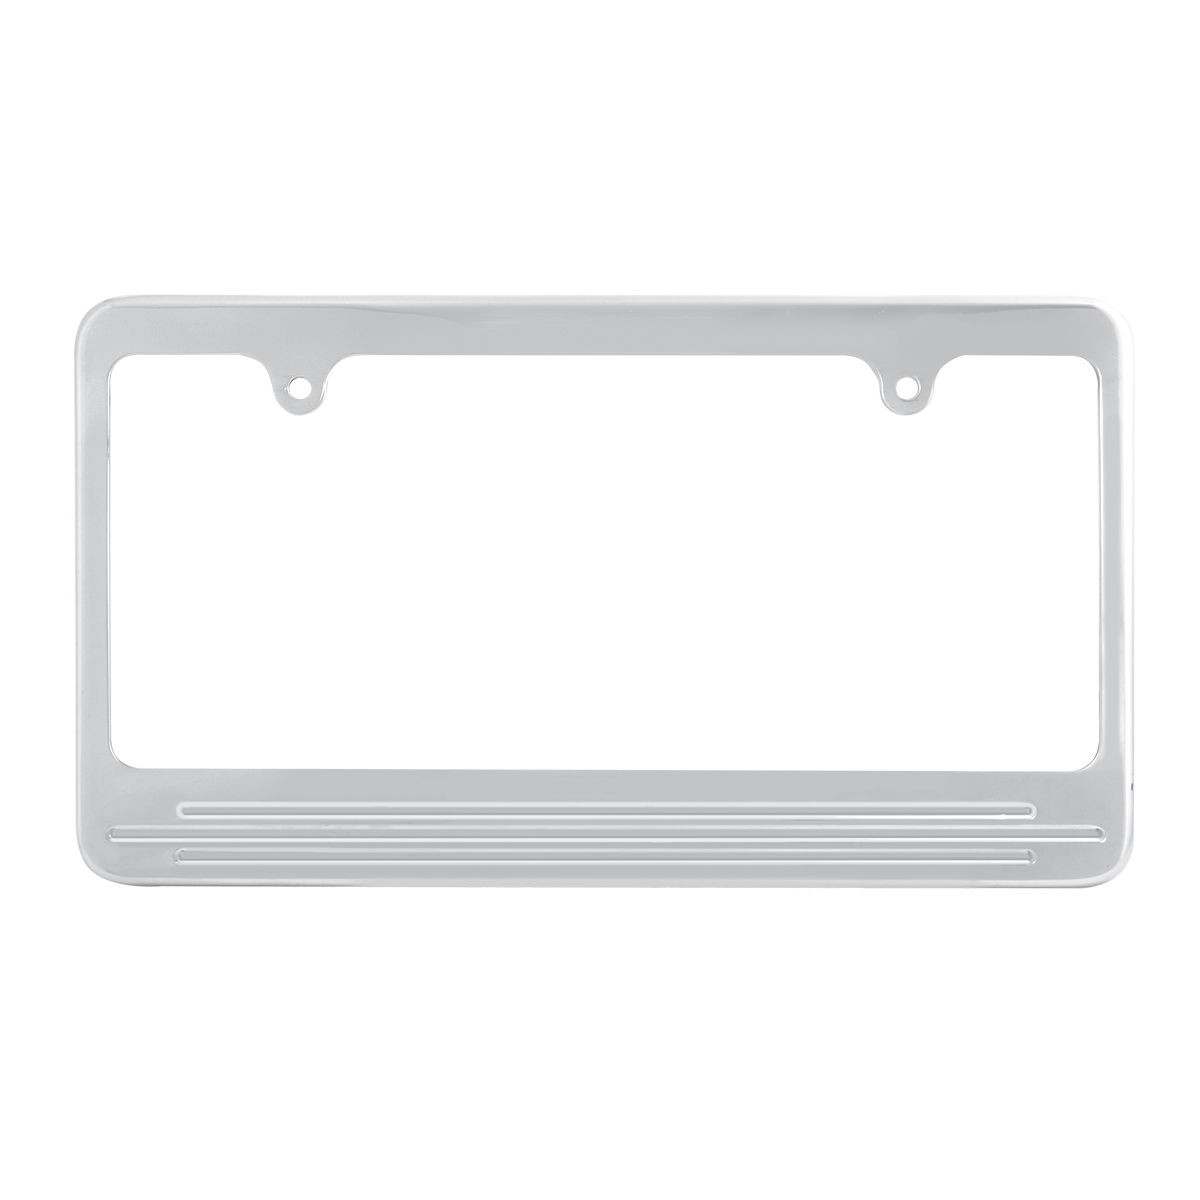 60473 Aluminum License Plate Frame with 2 Holes